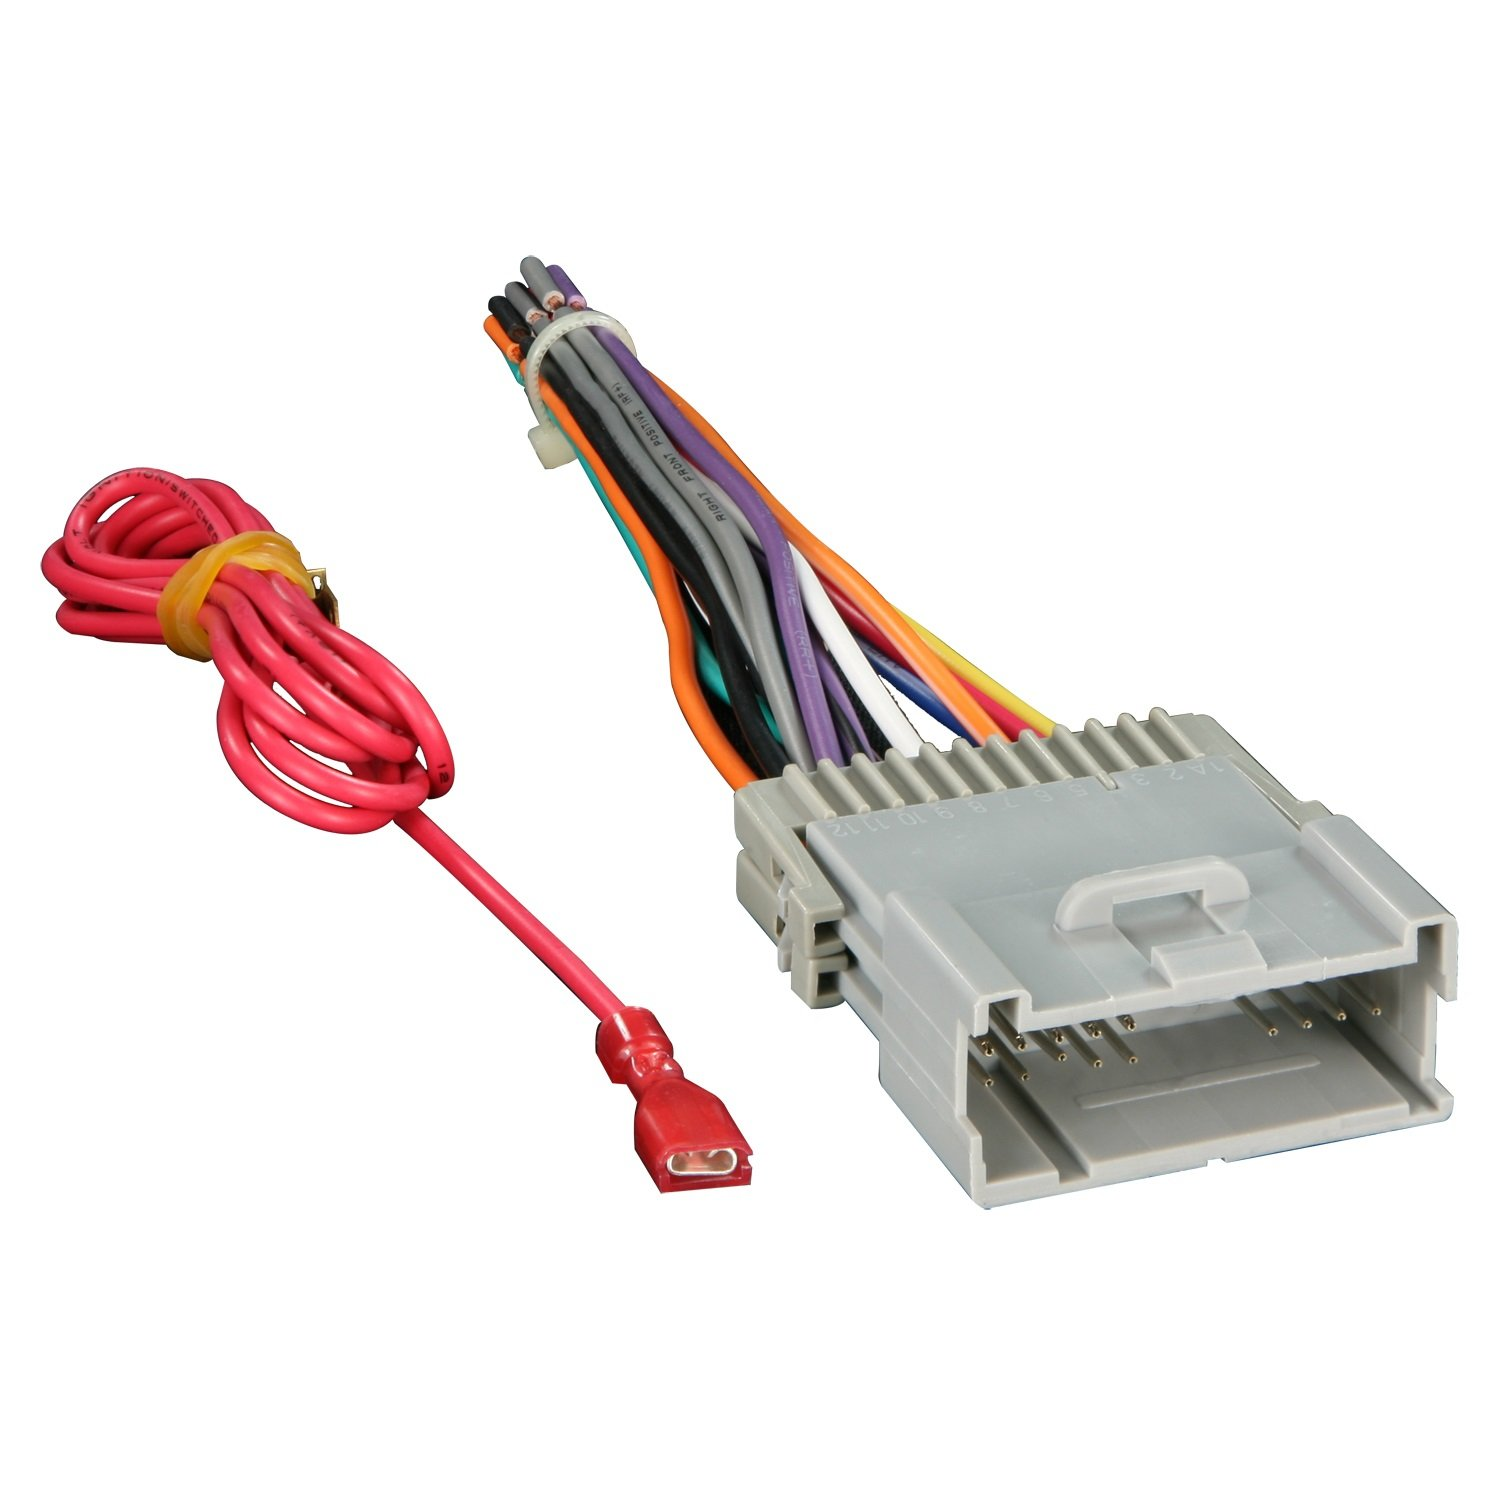 61eewxp9orL._SL1500_ amazon com metra 70 2003 radio wiring harness for gm 98 08  at fashall.co